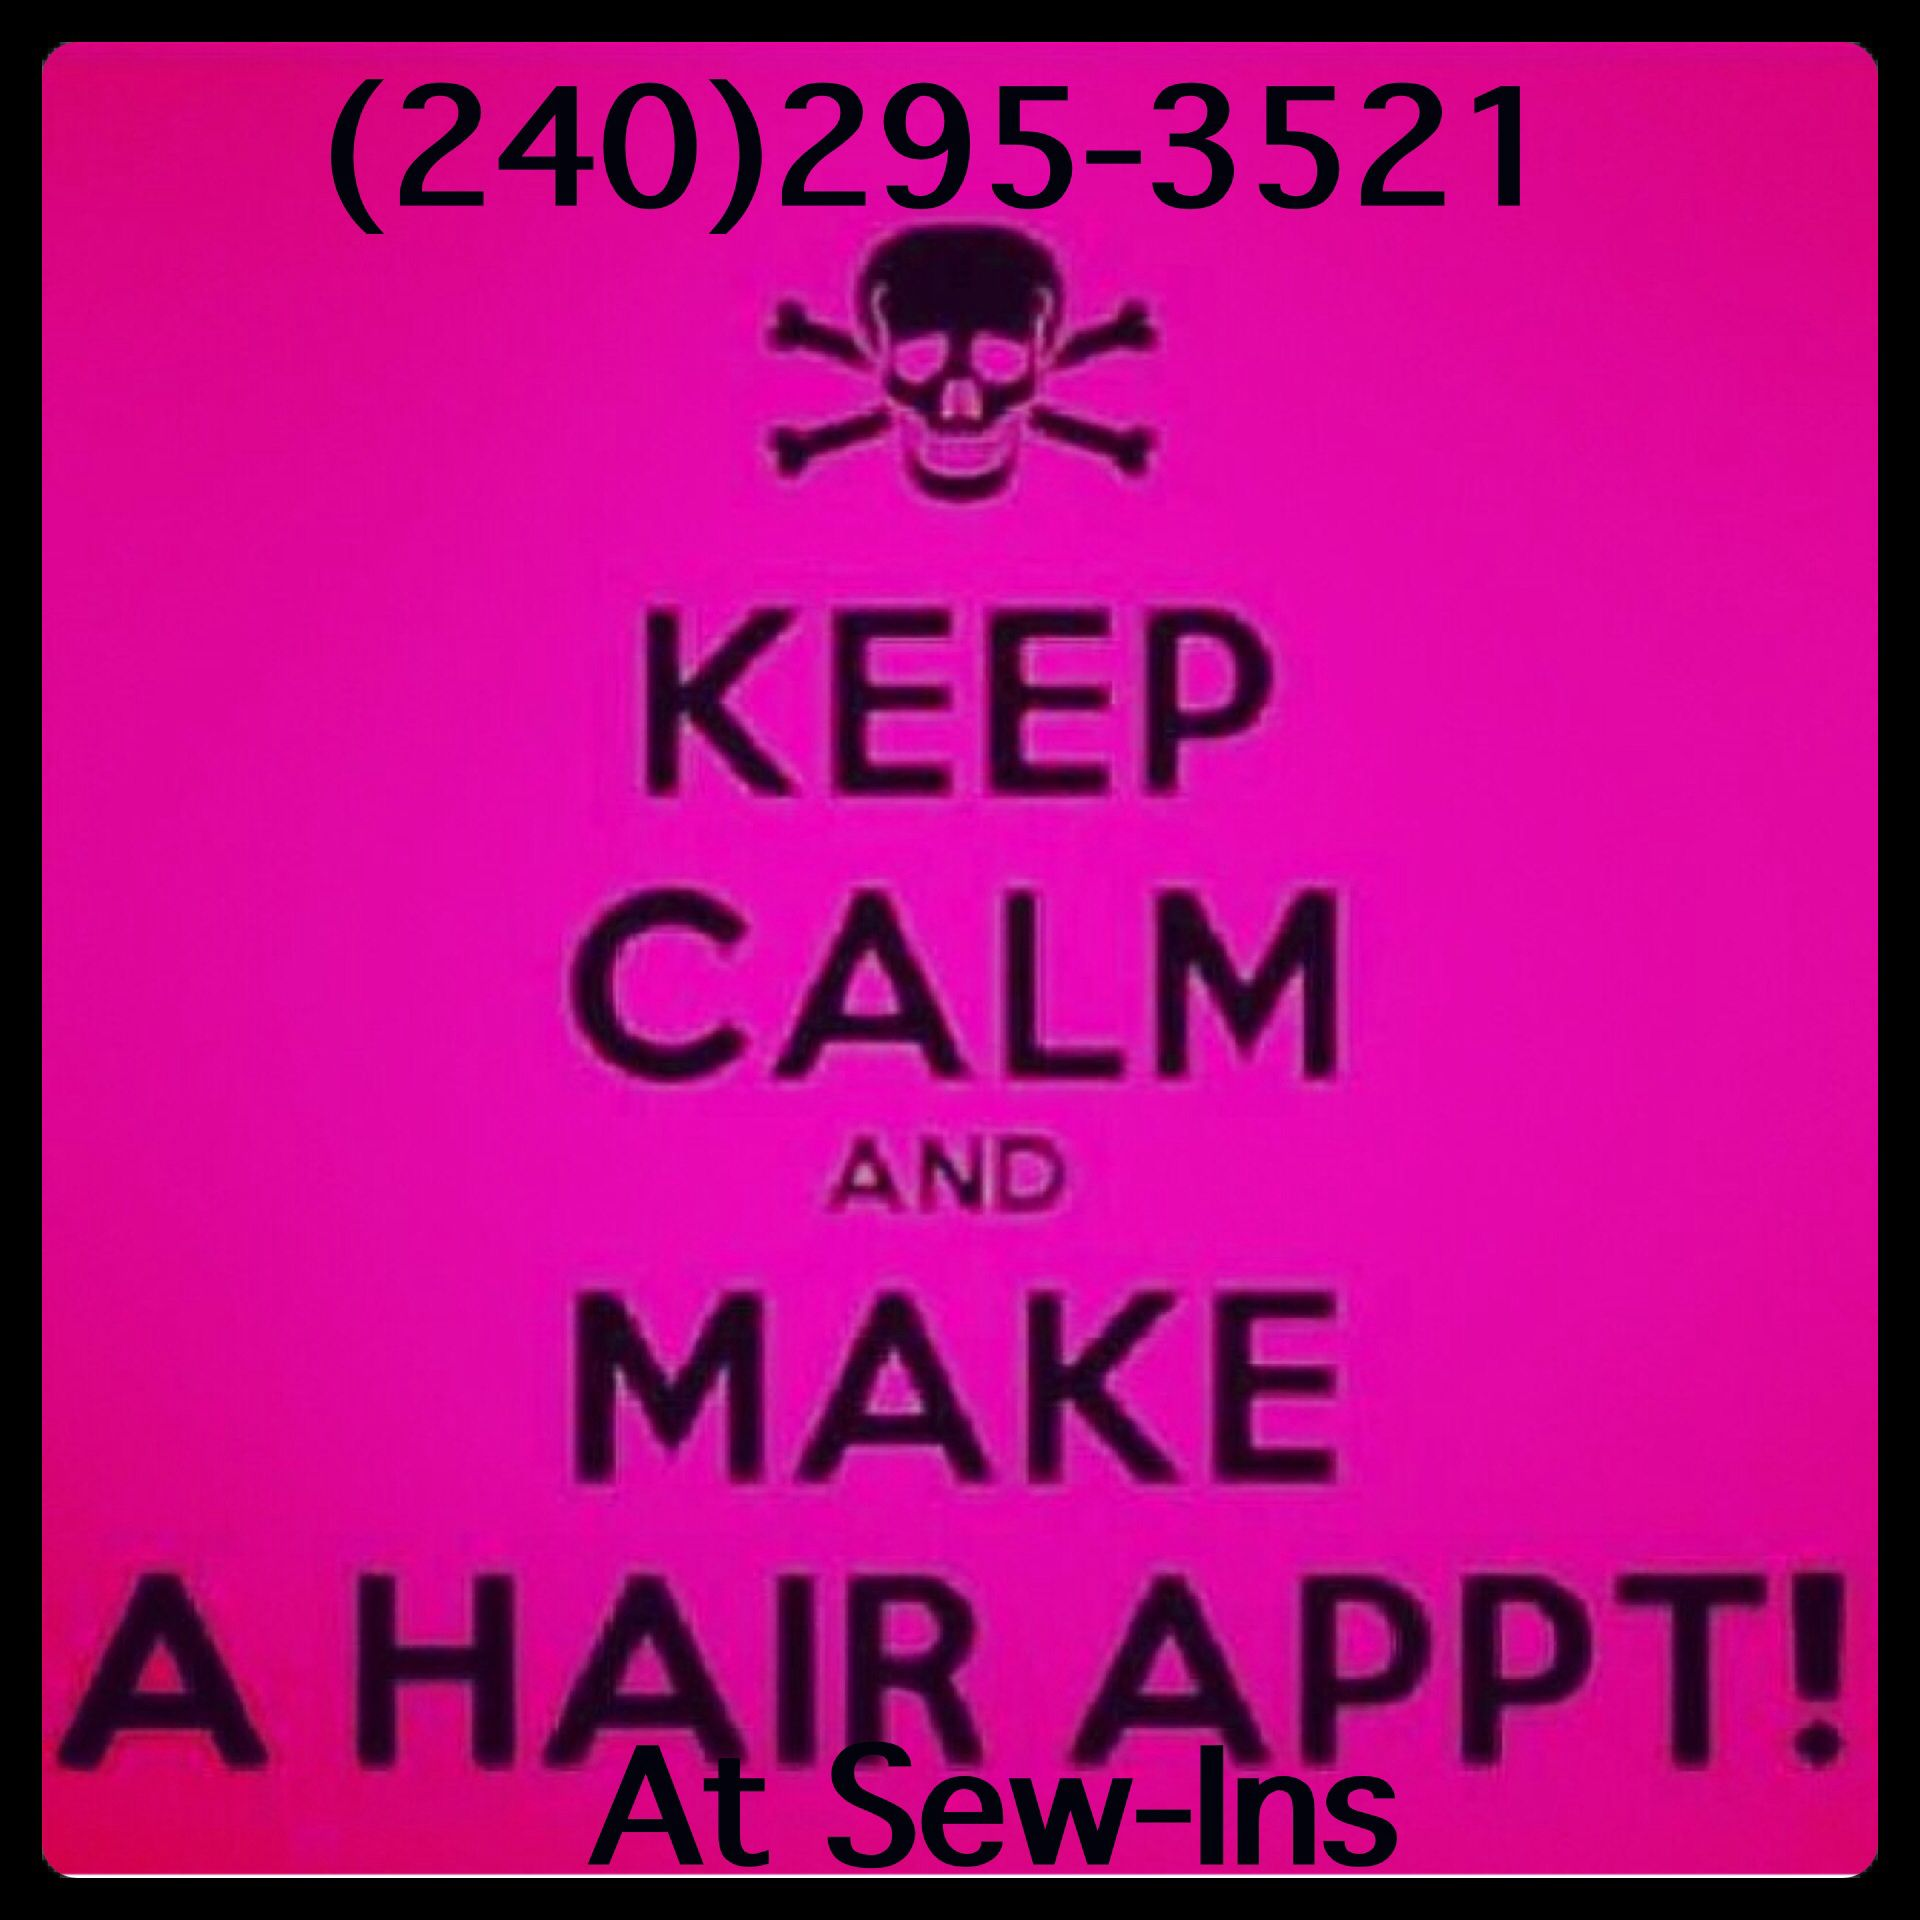 What are you waiting for????? www.sew-ins.com